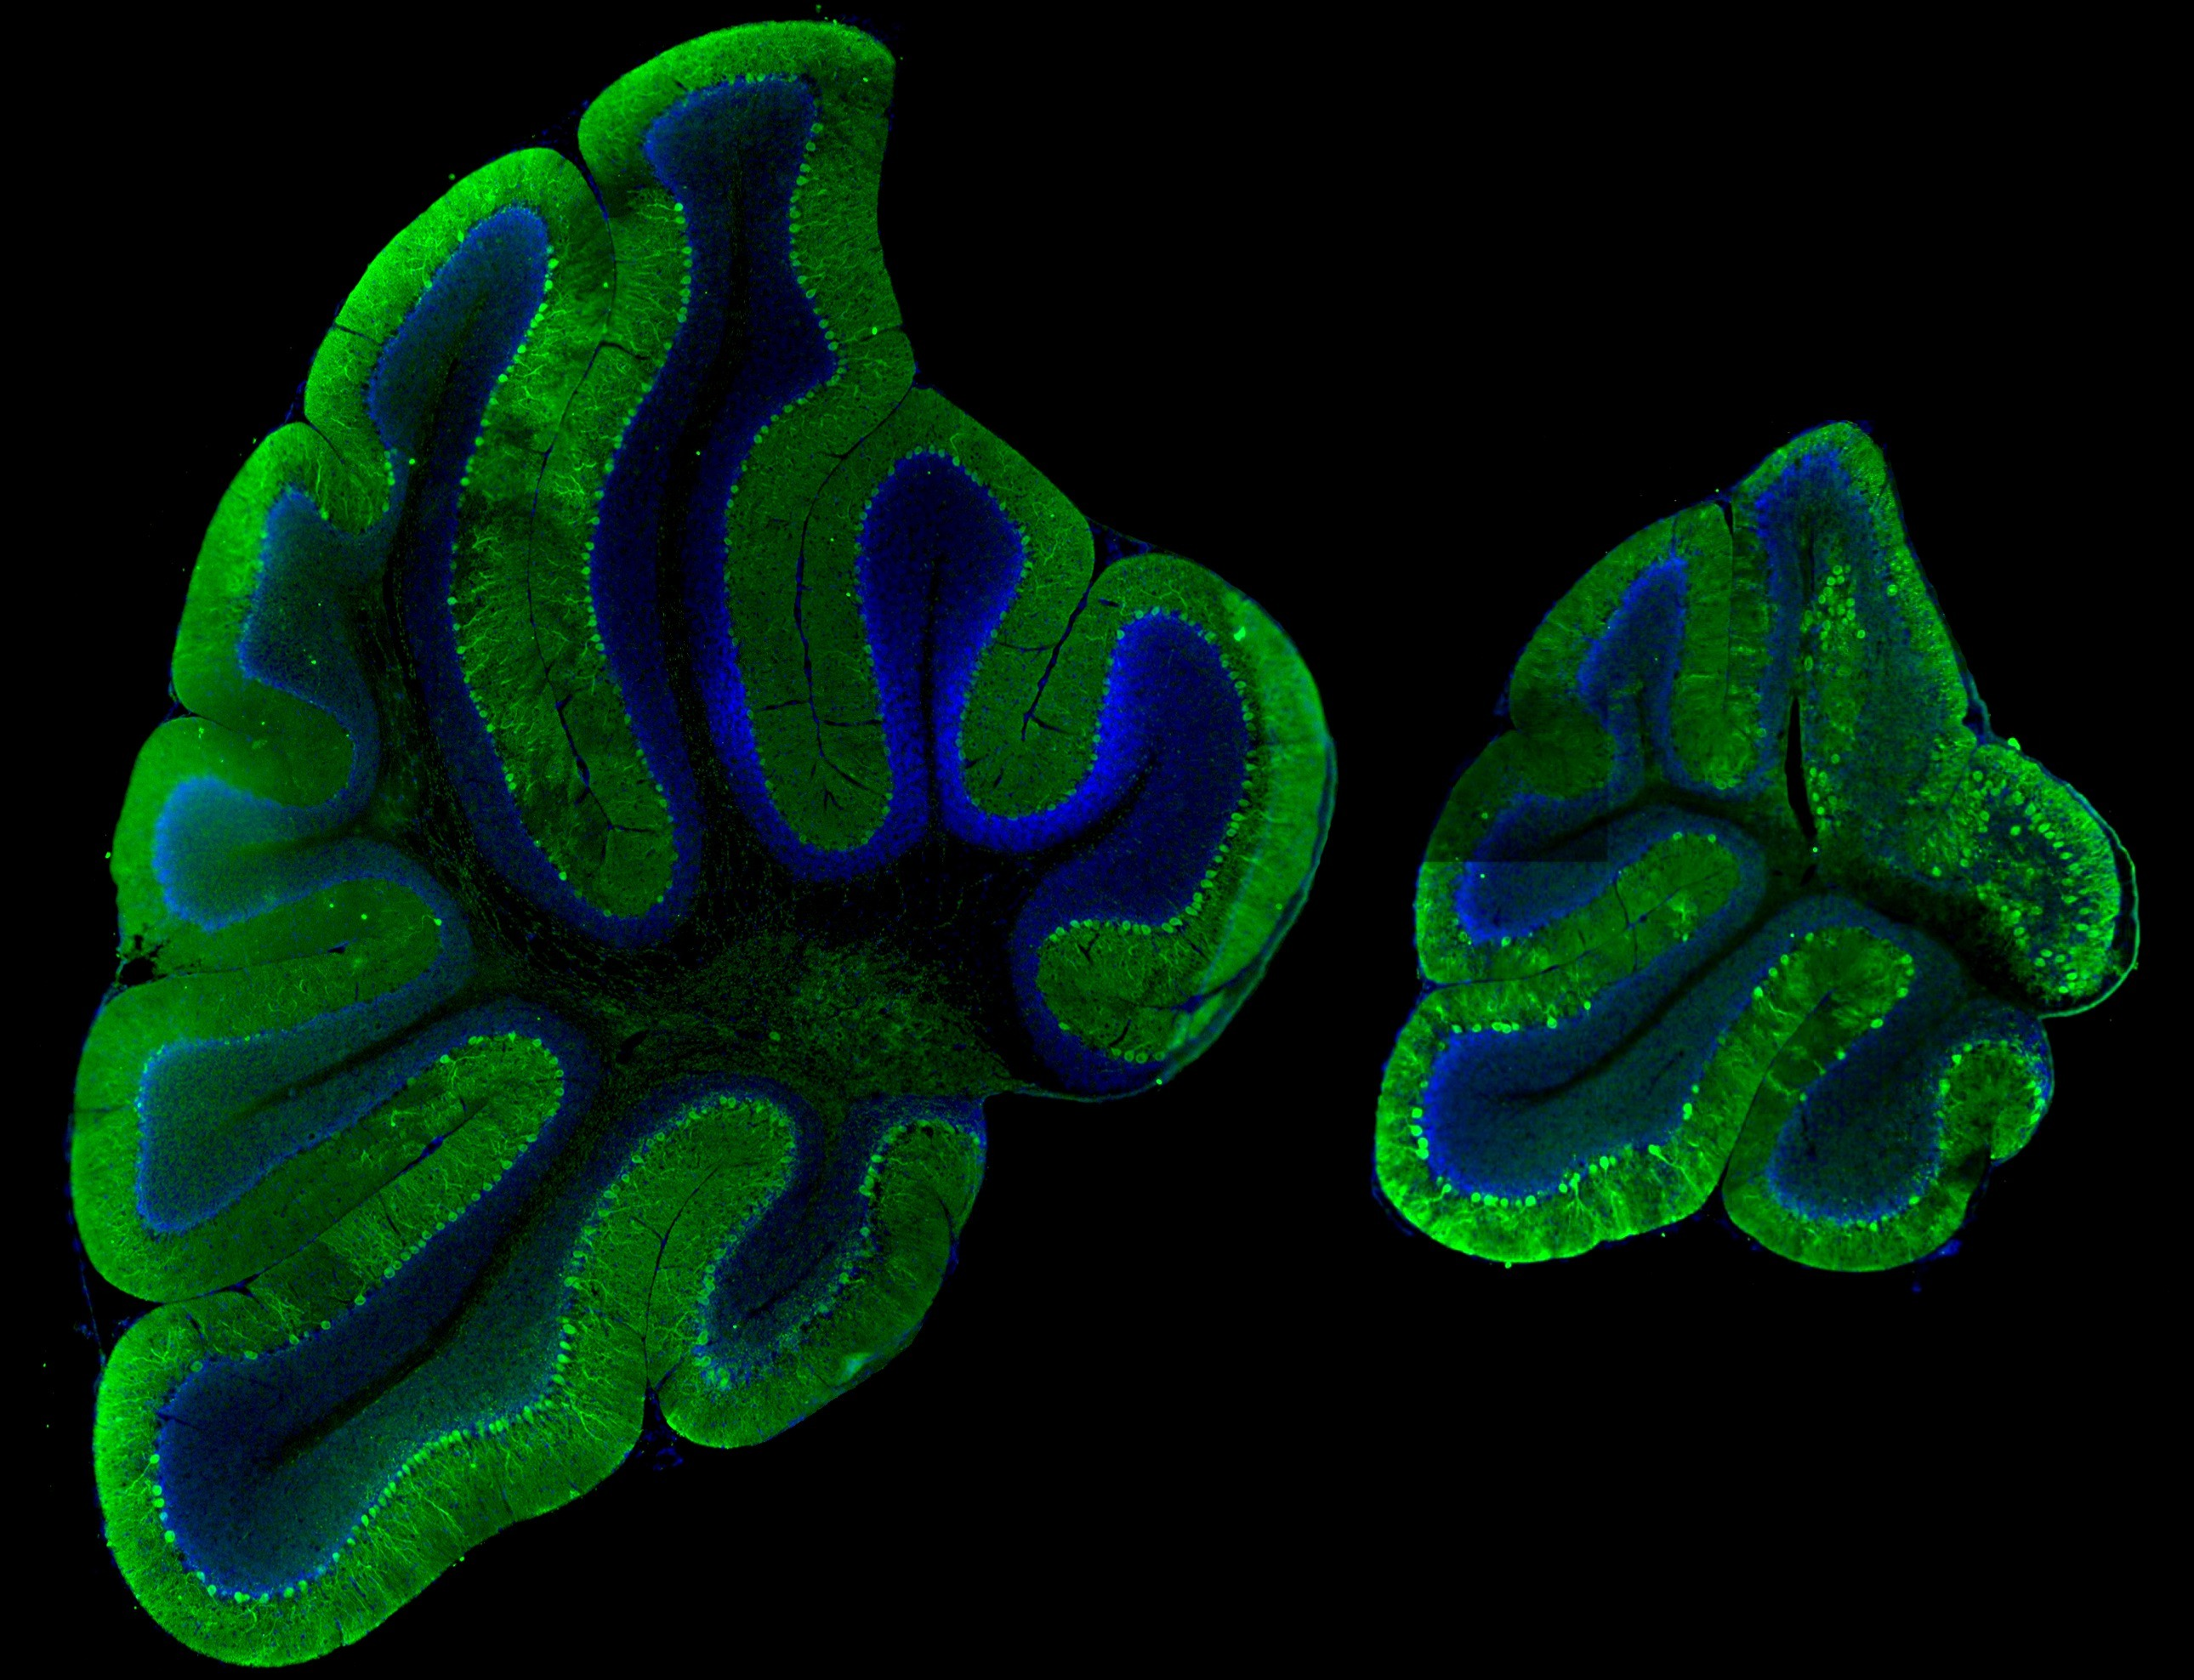 Wild type (left) and Mutant (right) Cerebellum